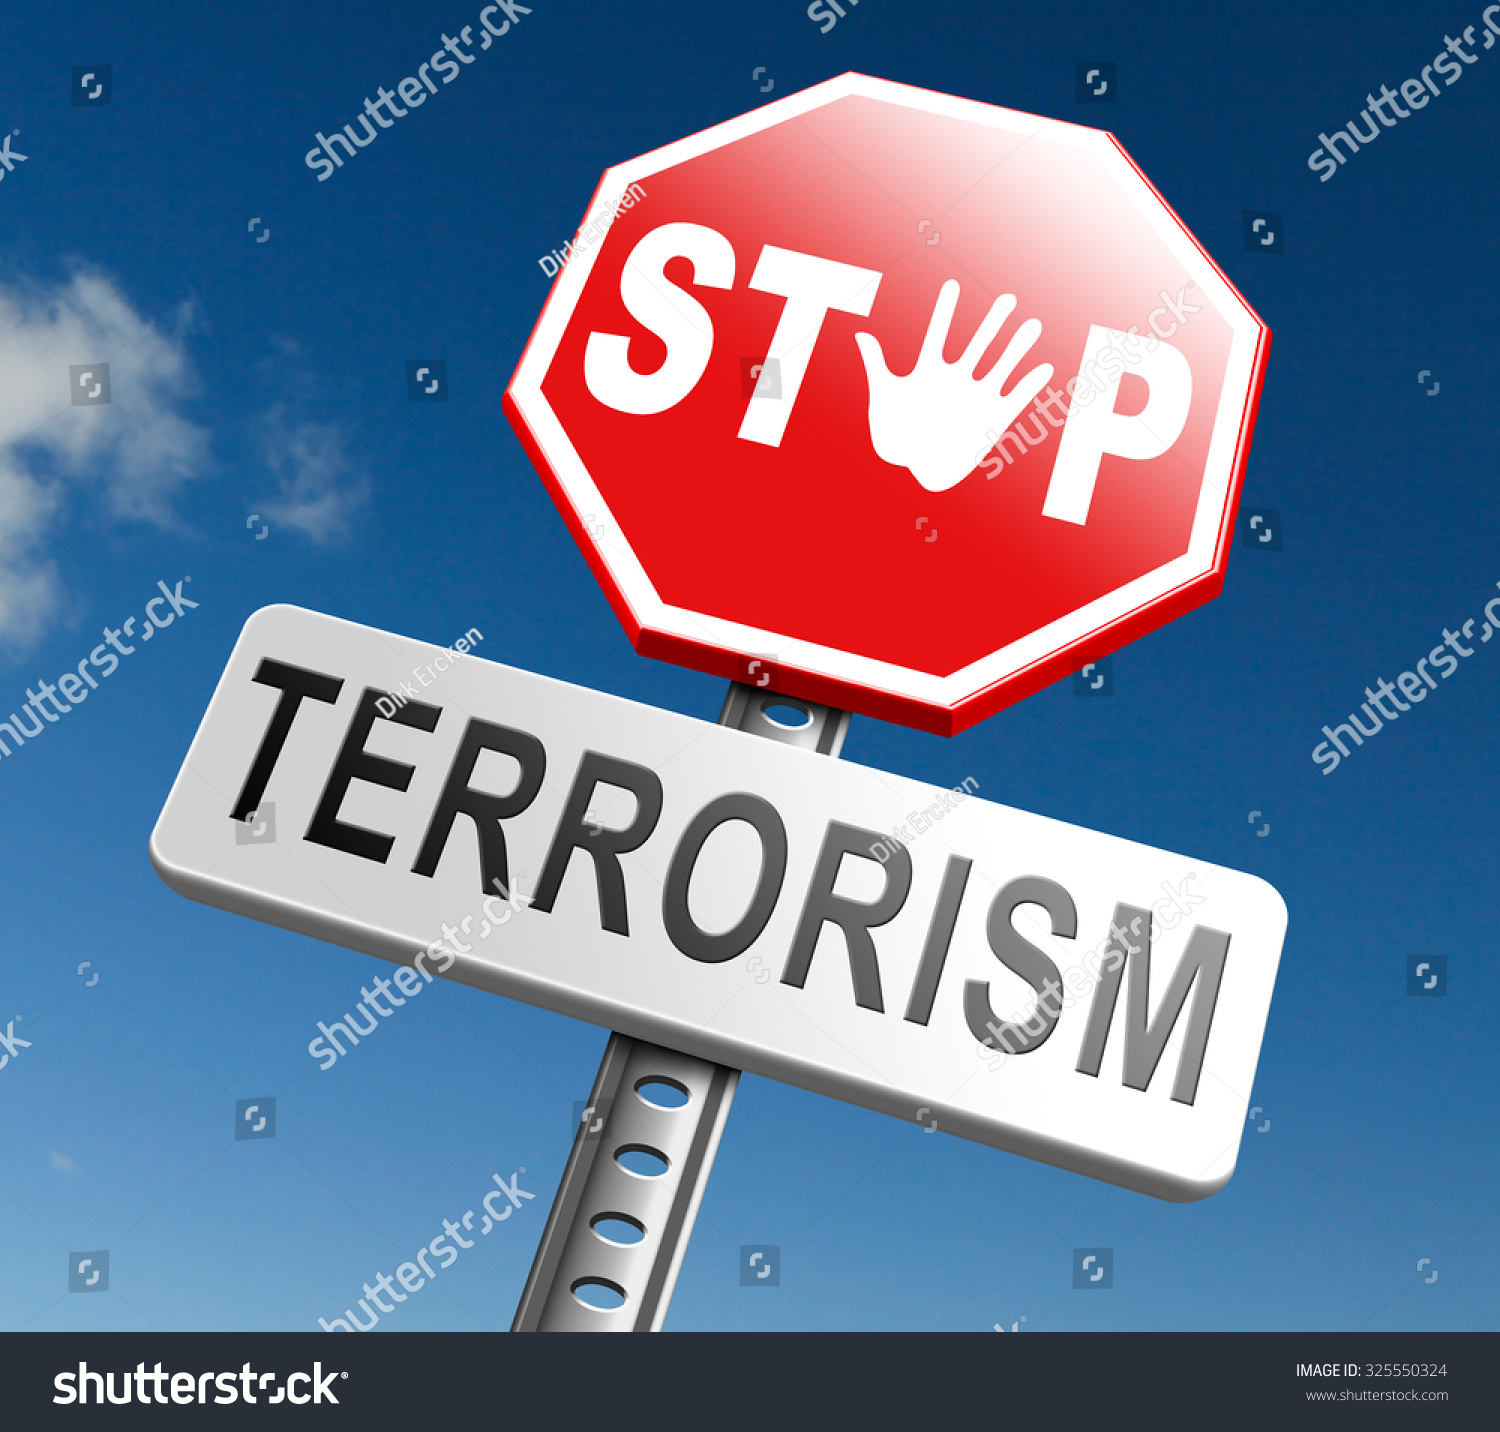 how to avoid terrorism In recent years, terrorist groups such as isil, al-qaida and boko haram have shaped our image of violent extremism and the debate about how to address this threat.